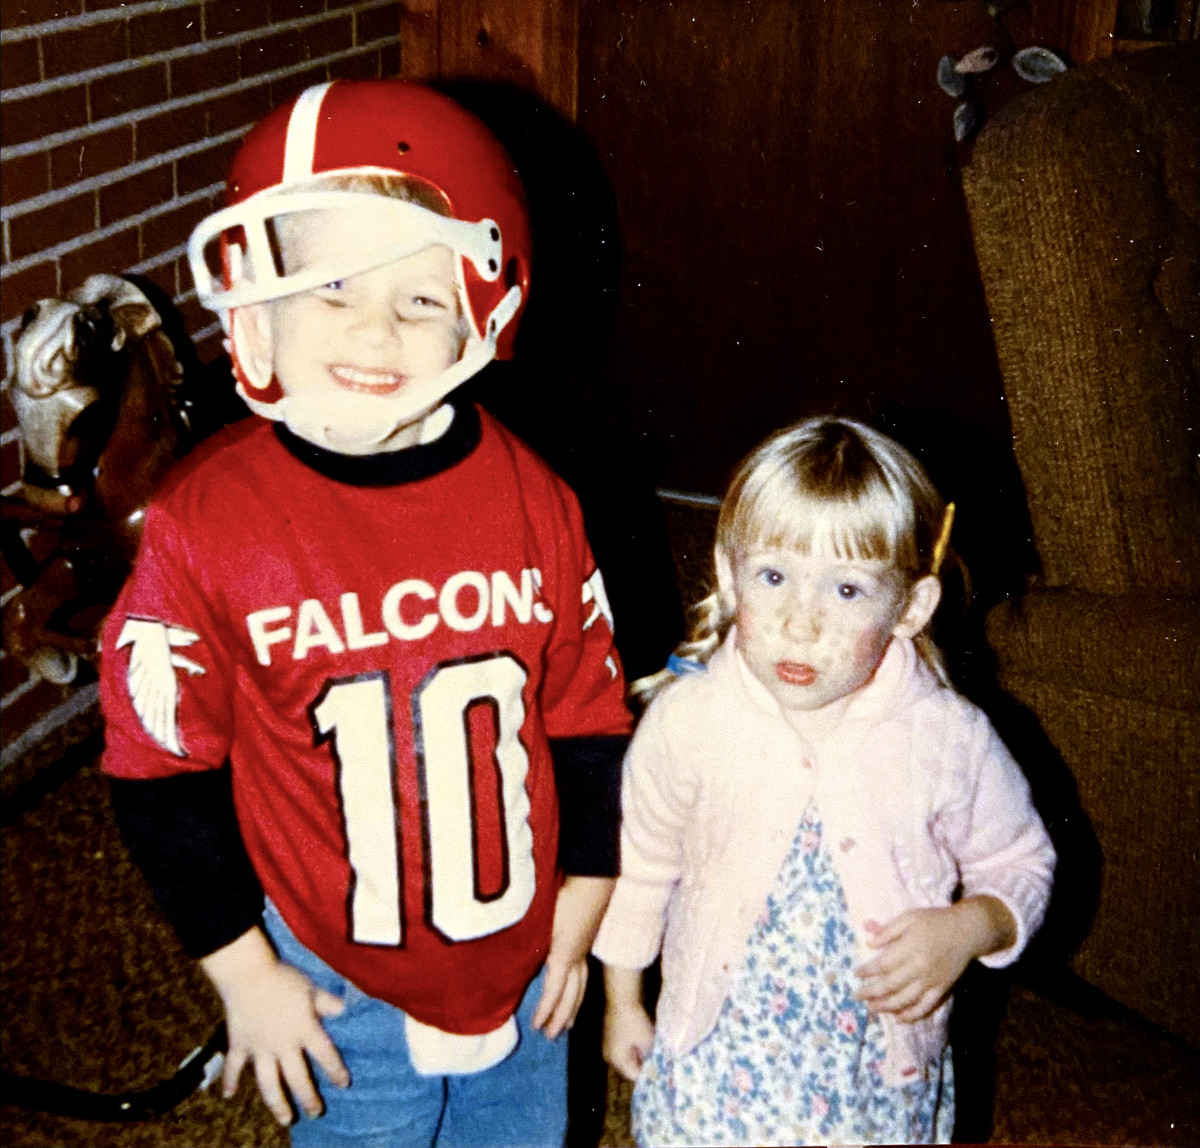 For the author and for the Falcons, there was a time before unrelenting pain.